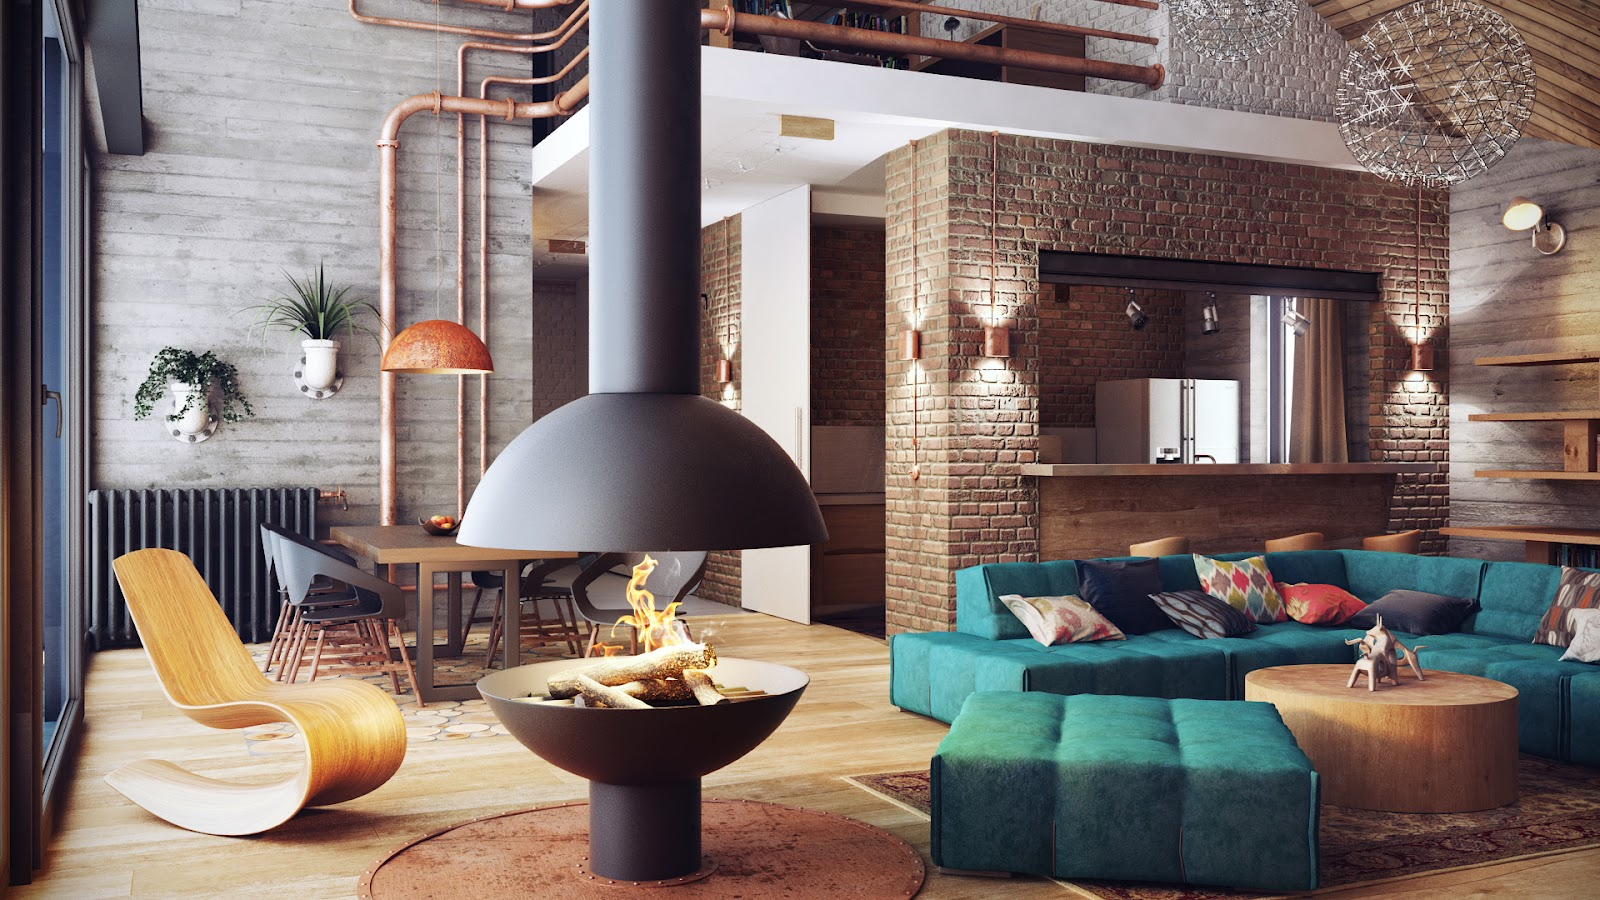 Industrial Style Bedroom Design The Essential Guide - A loft with industrial design by russian designer maxim zhukov